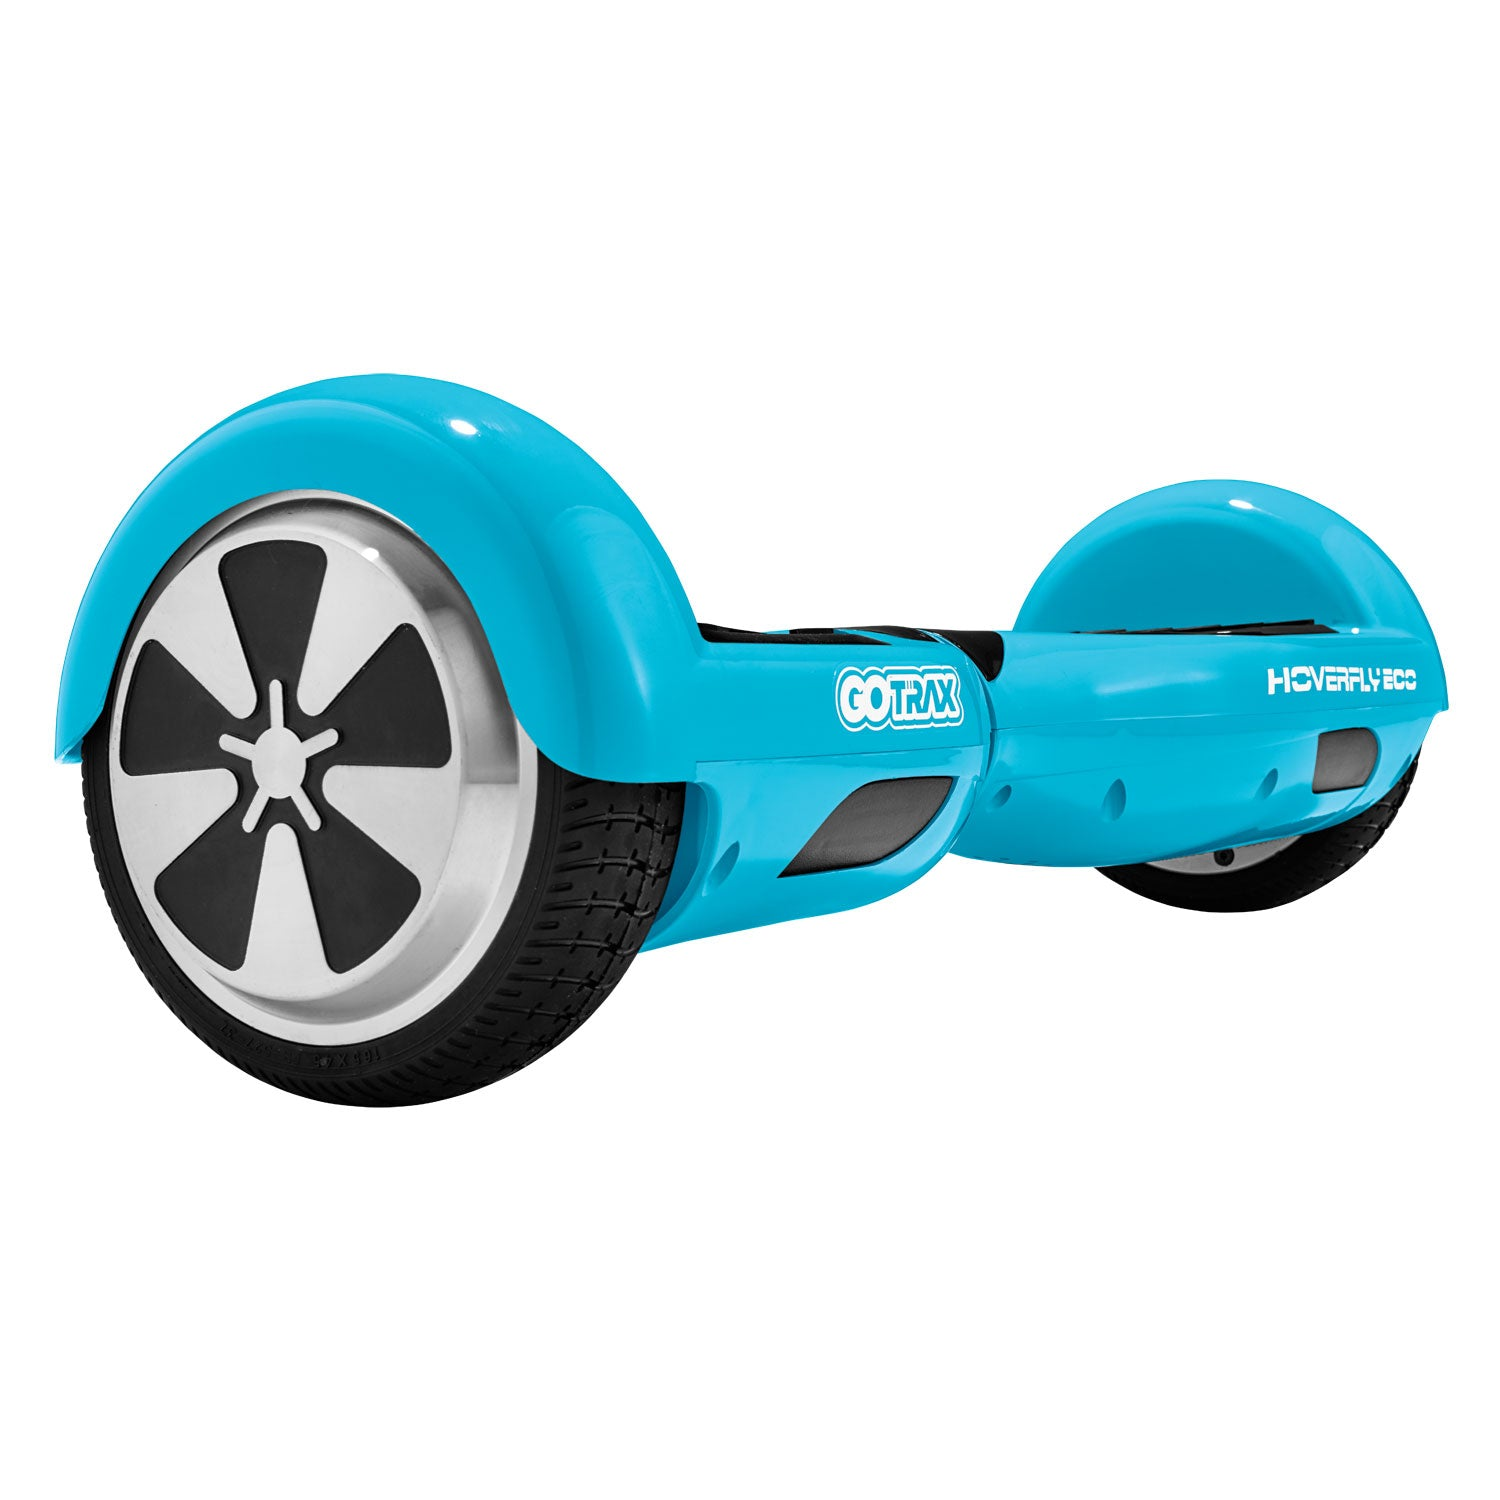 Turquoise hoverfly eco hoverboard